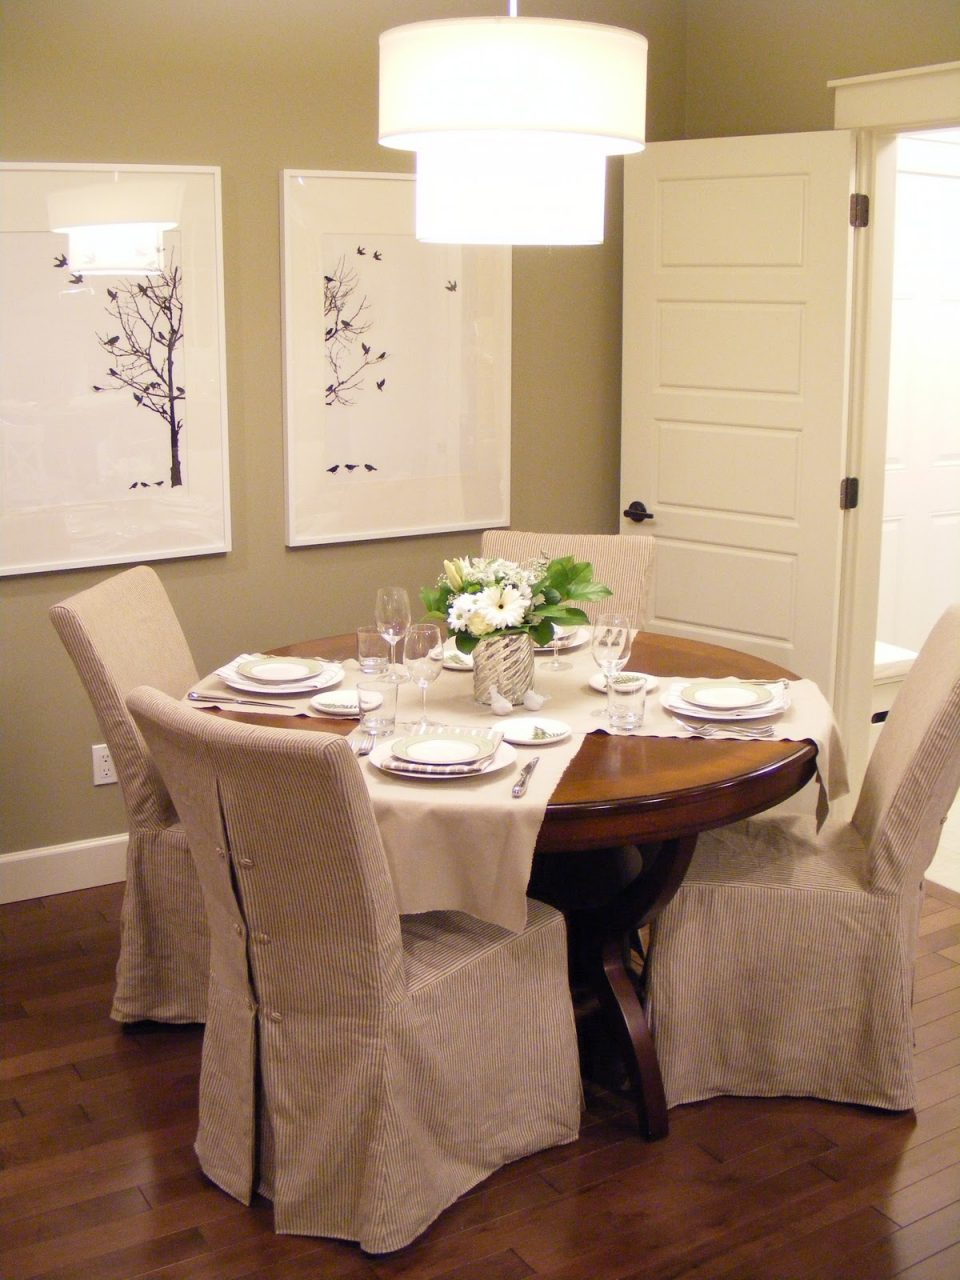 Slipcovers For Dining Chairs With Arms From Uniques Dining Room